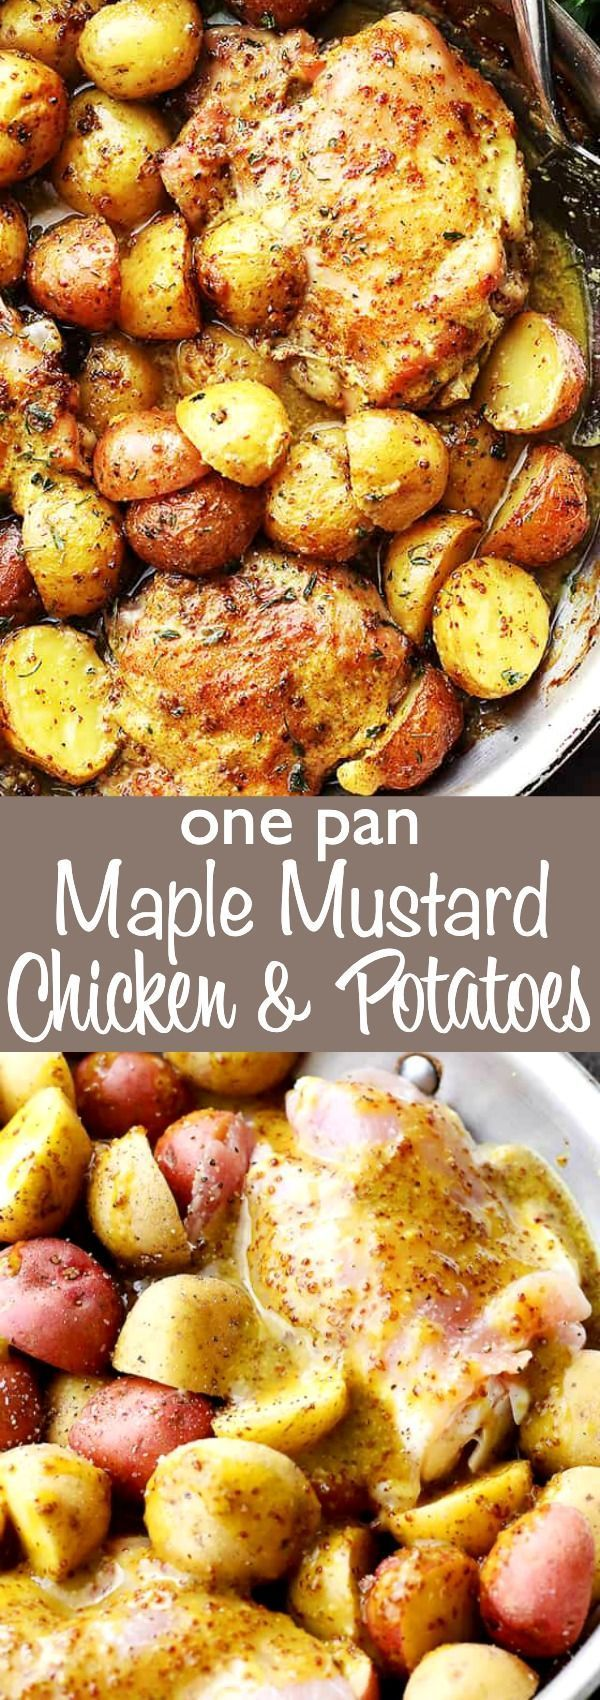 Apr 4, 2020 – Maple Mustard Chicken and Potatoes – Maple syrup mustard chicken and potatoes, all made in just one pan! S…